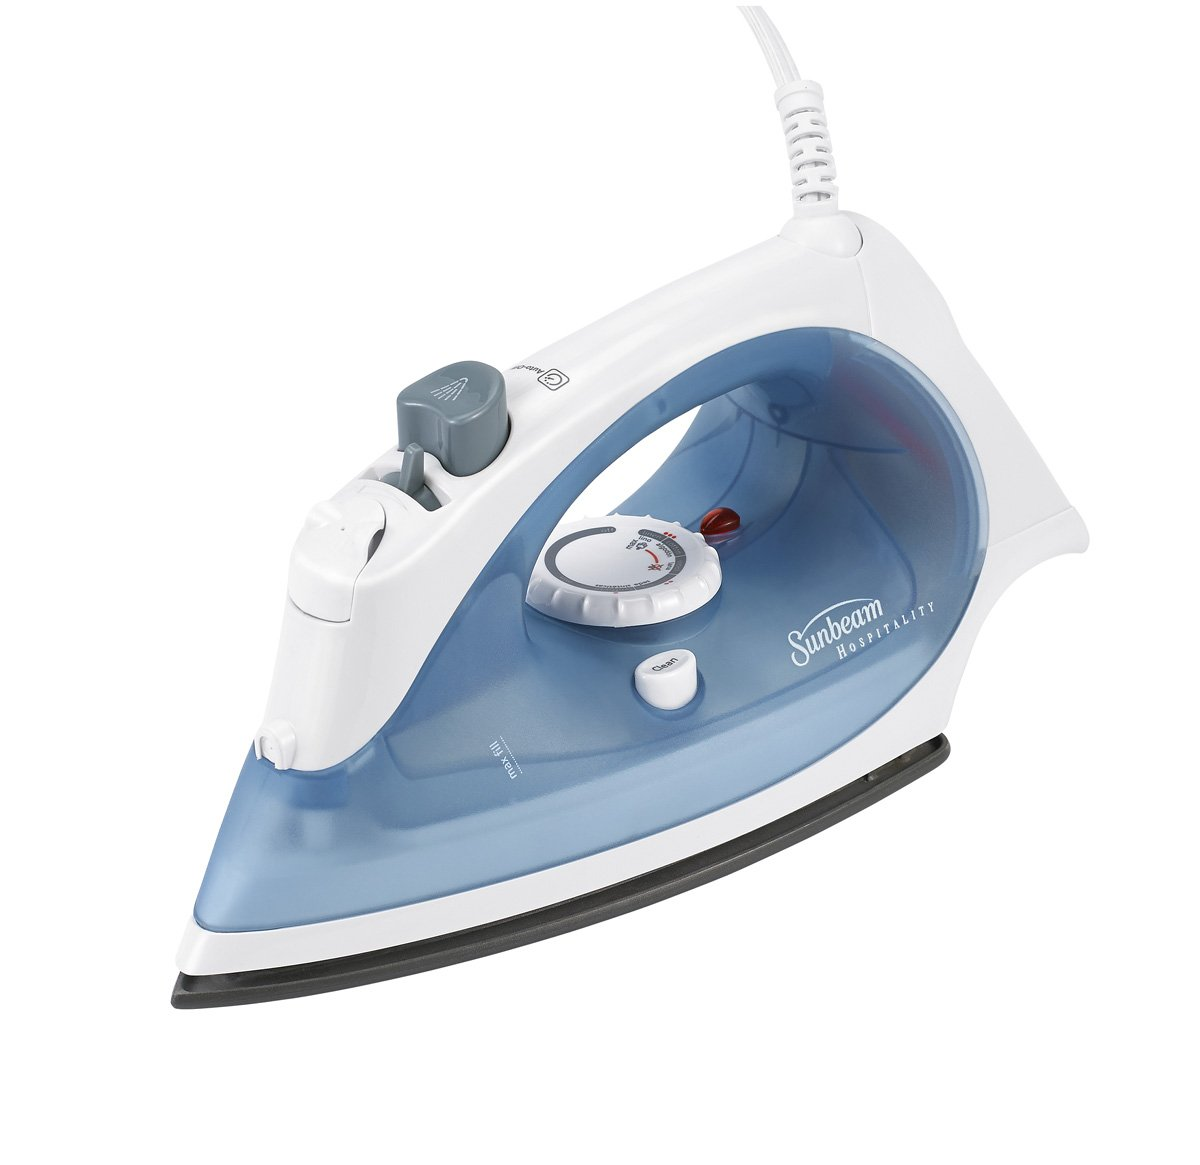 Sunbeam Greensense Compact Steam Iron, Automatic Shut-Off, Drip Free, Spray Mist, Non-Stick, Self-Cleaning